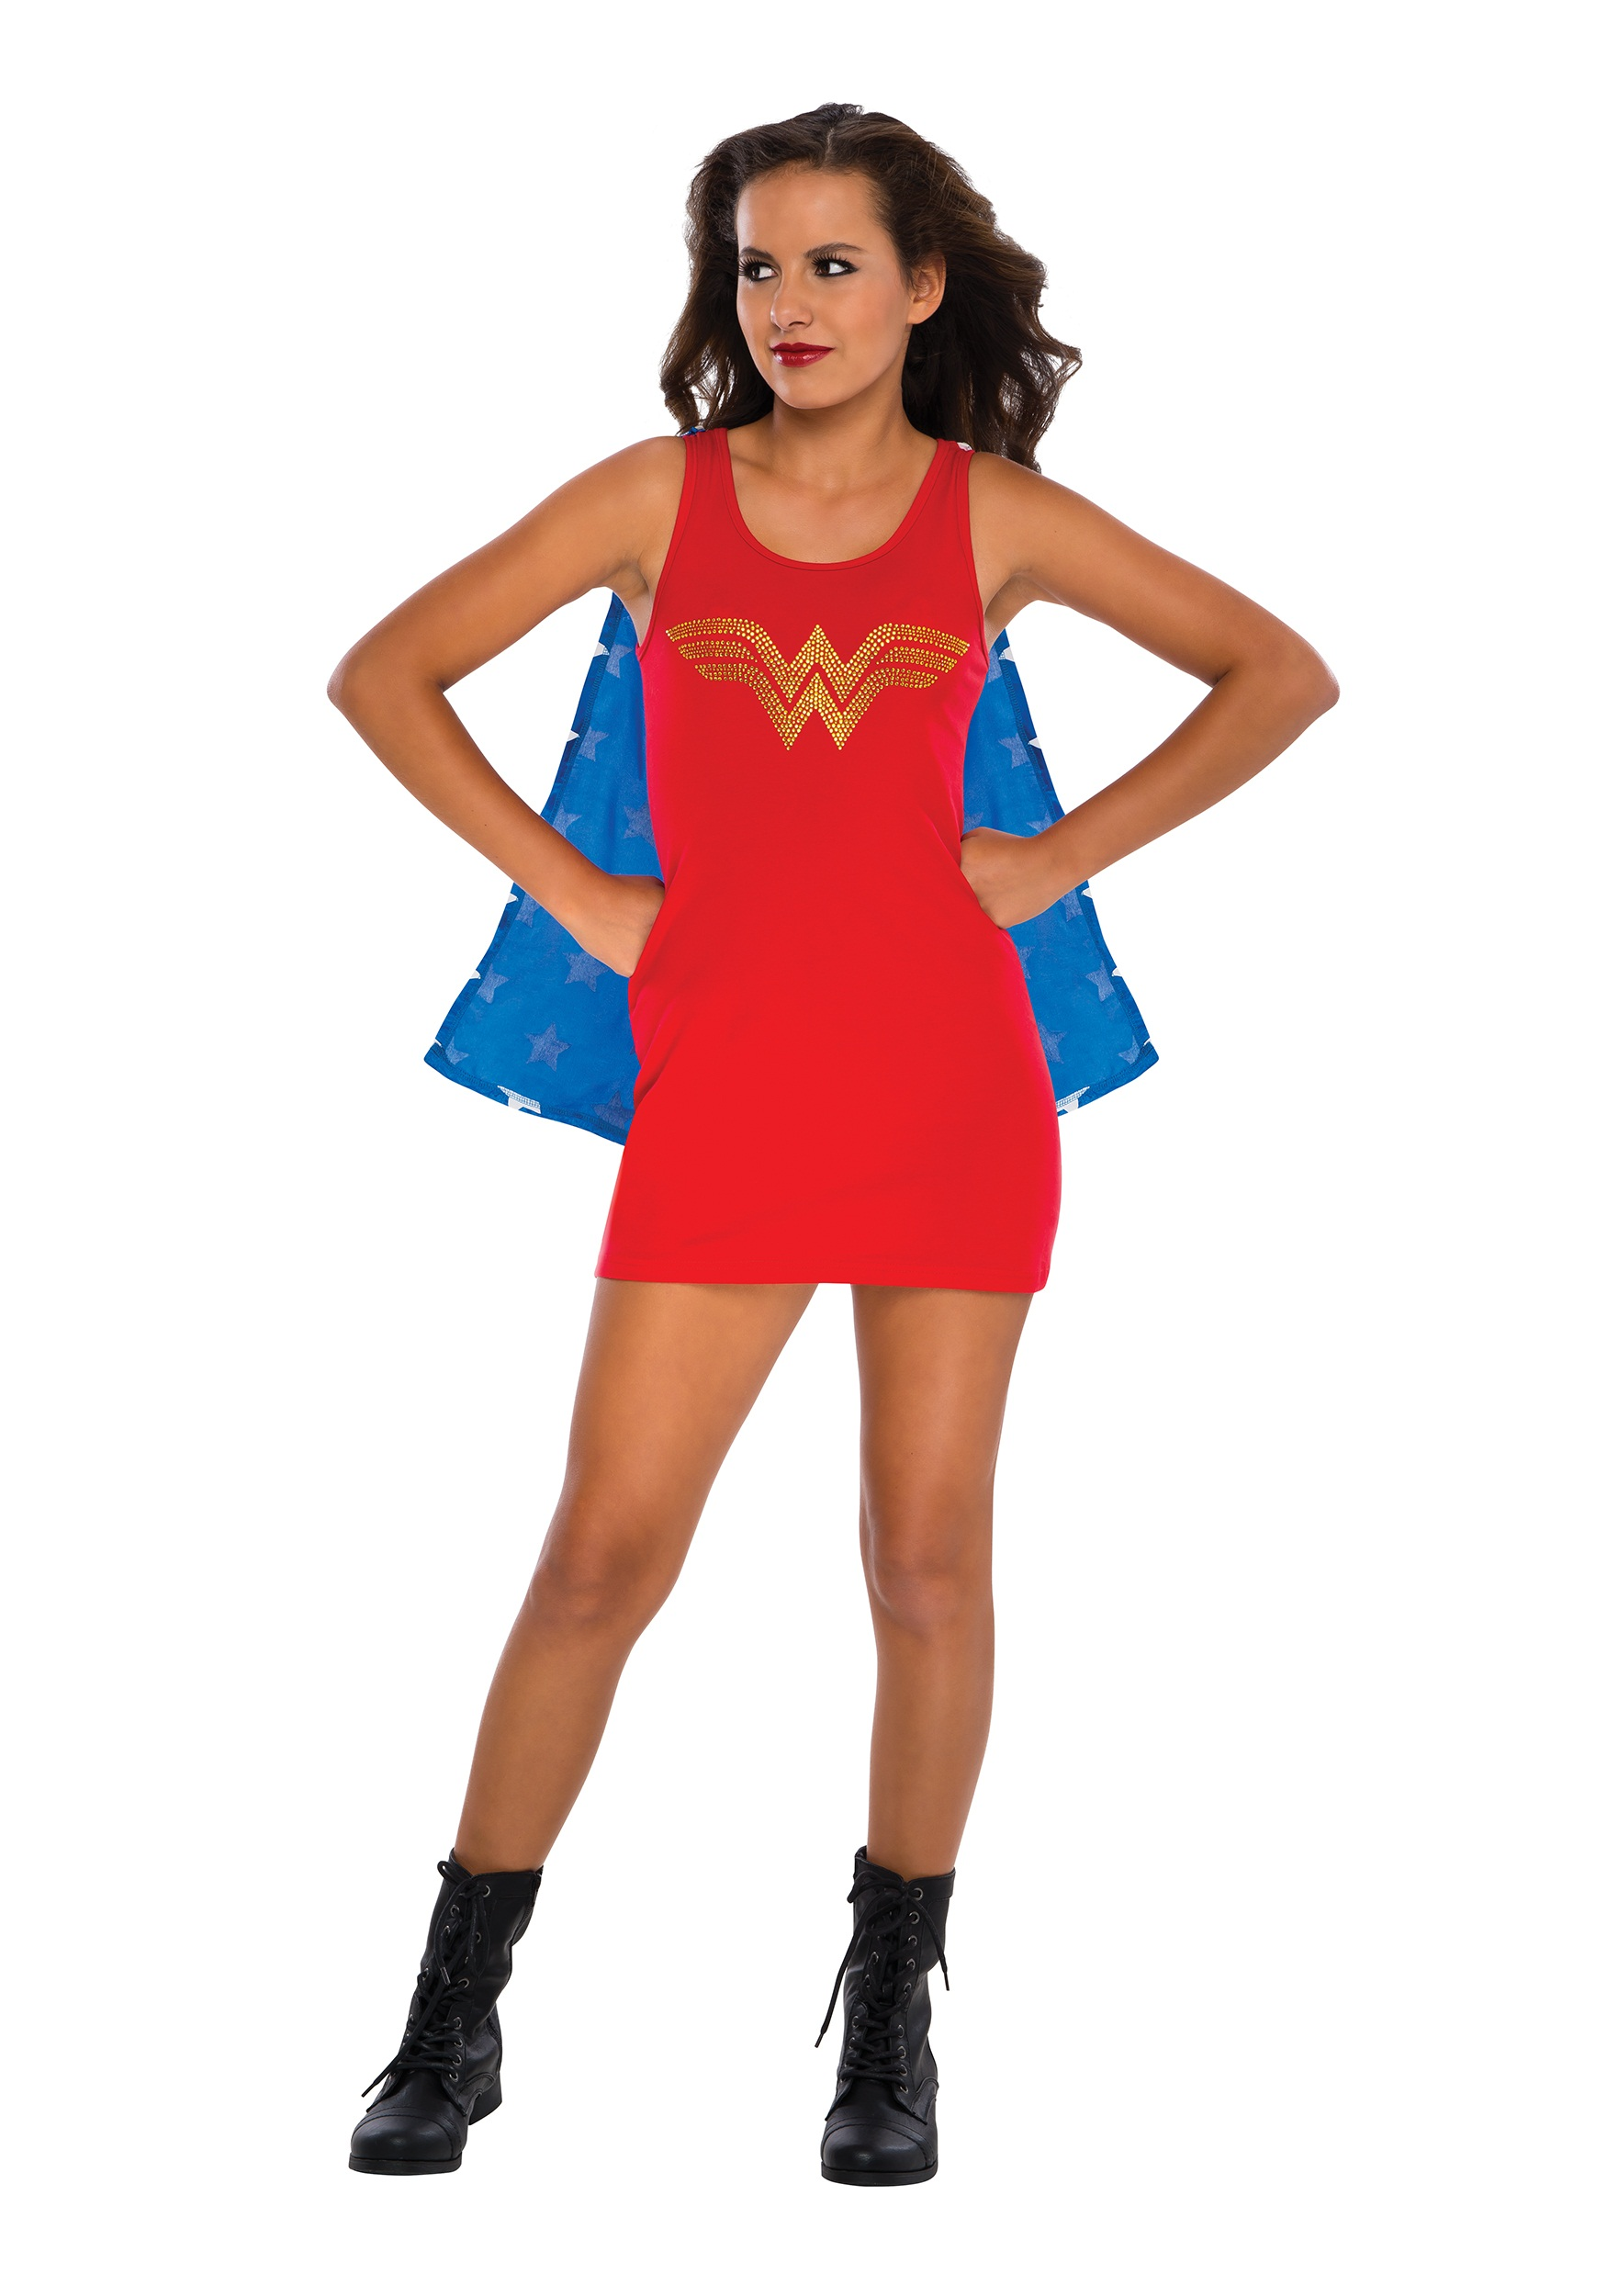 Halloween Costumes For Cheapest Prices At HalloweenBoom.com